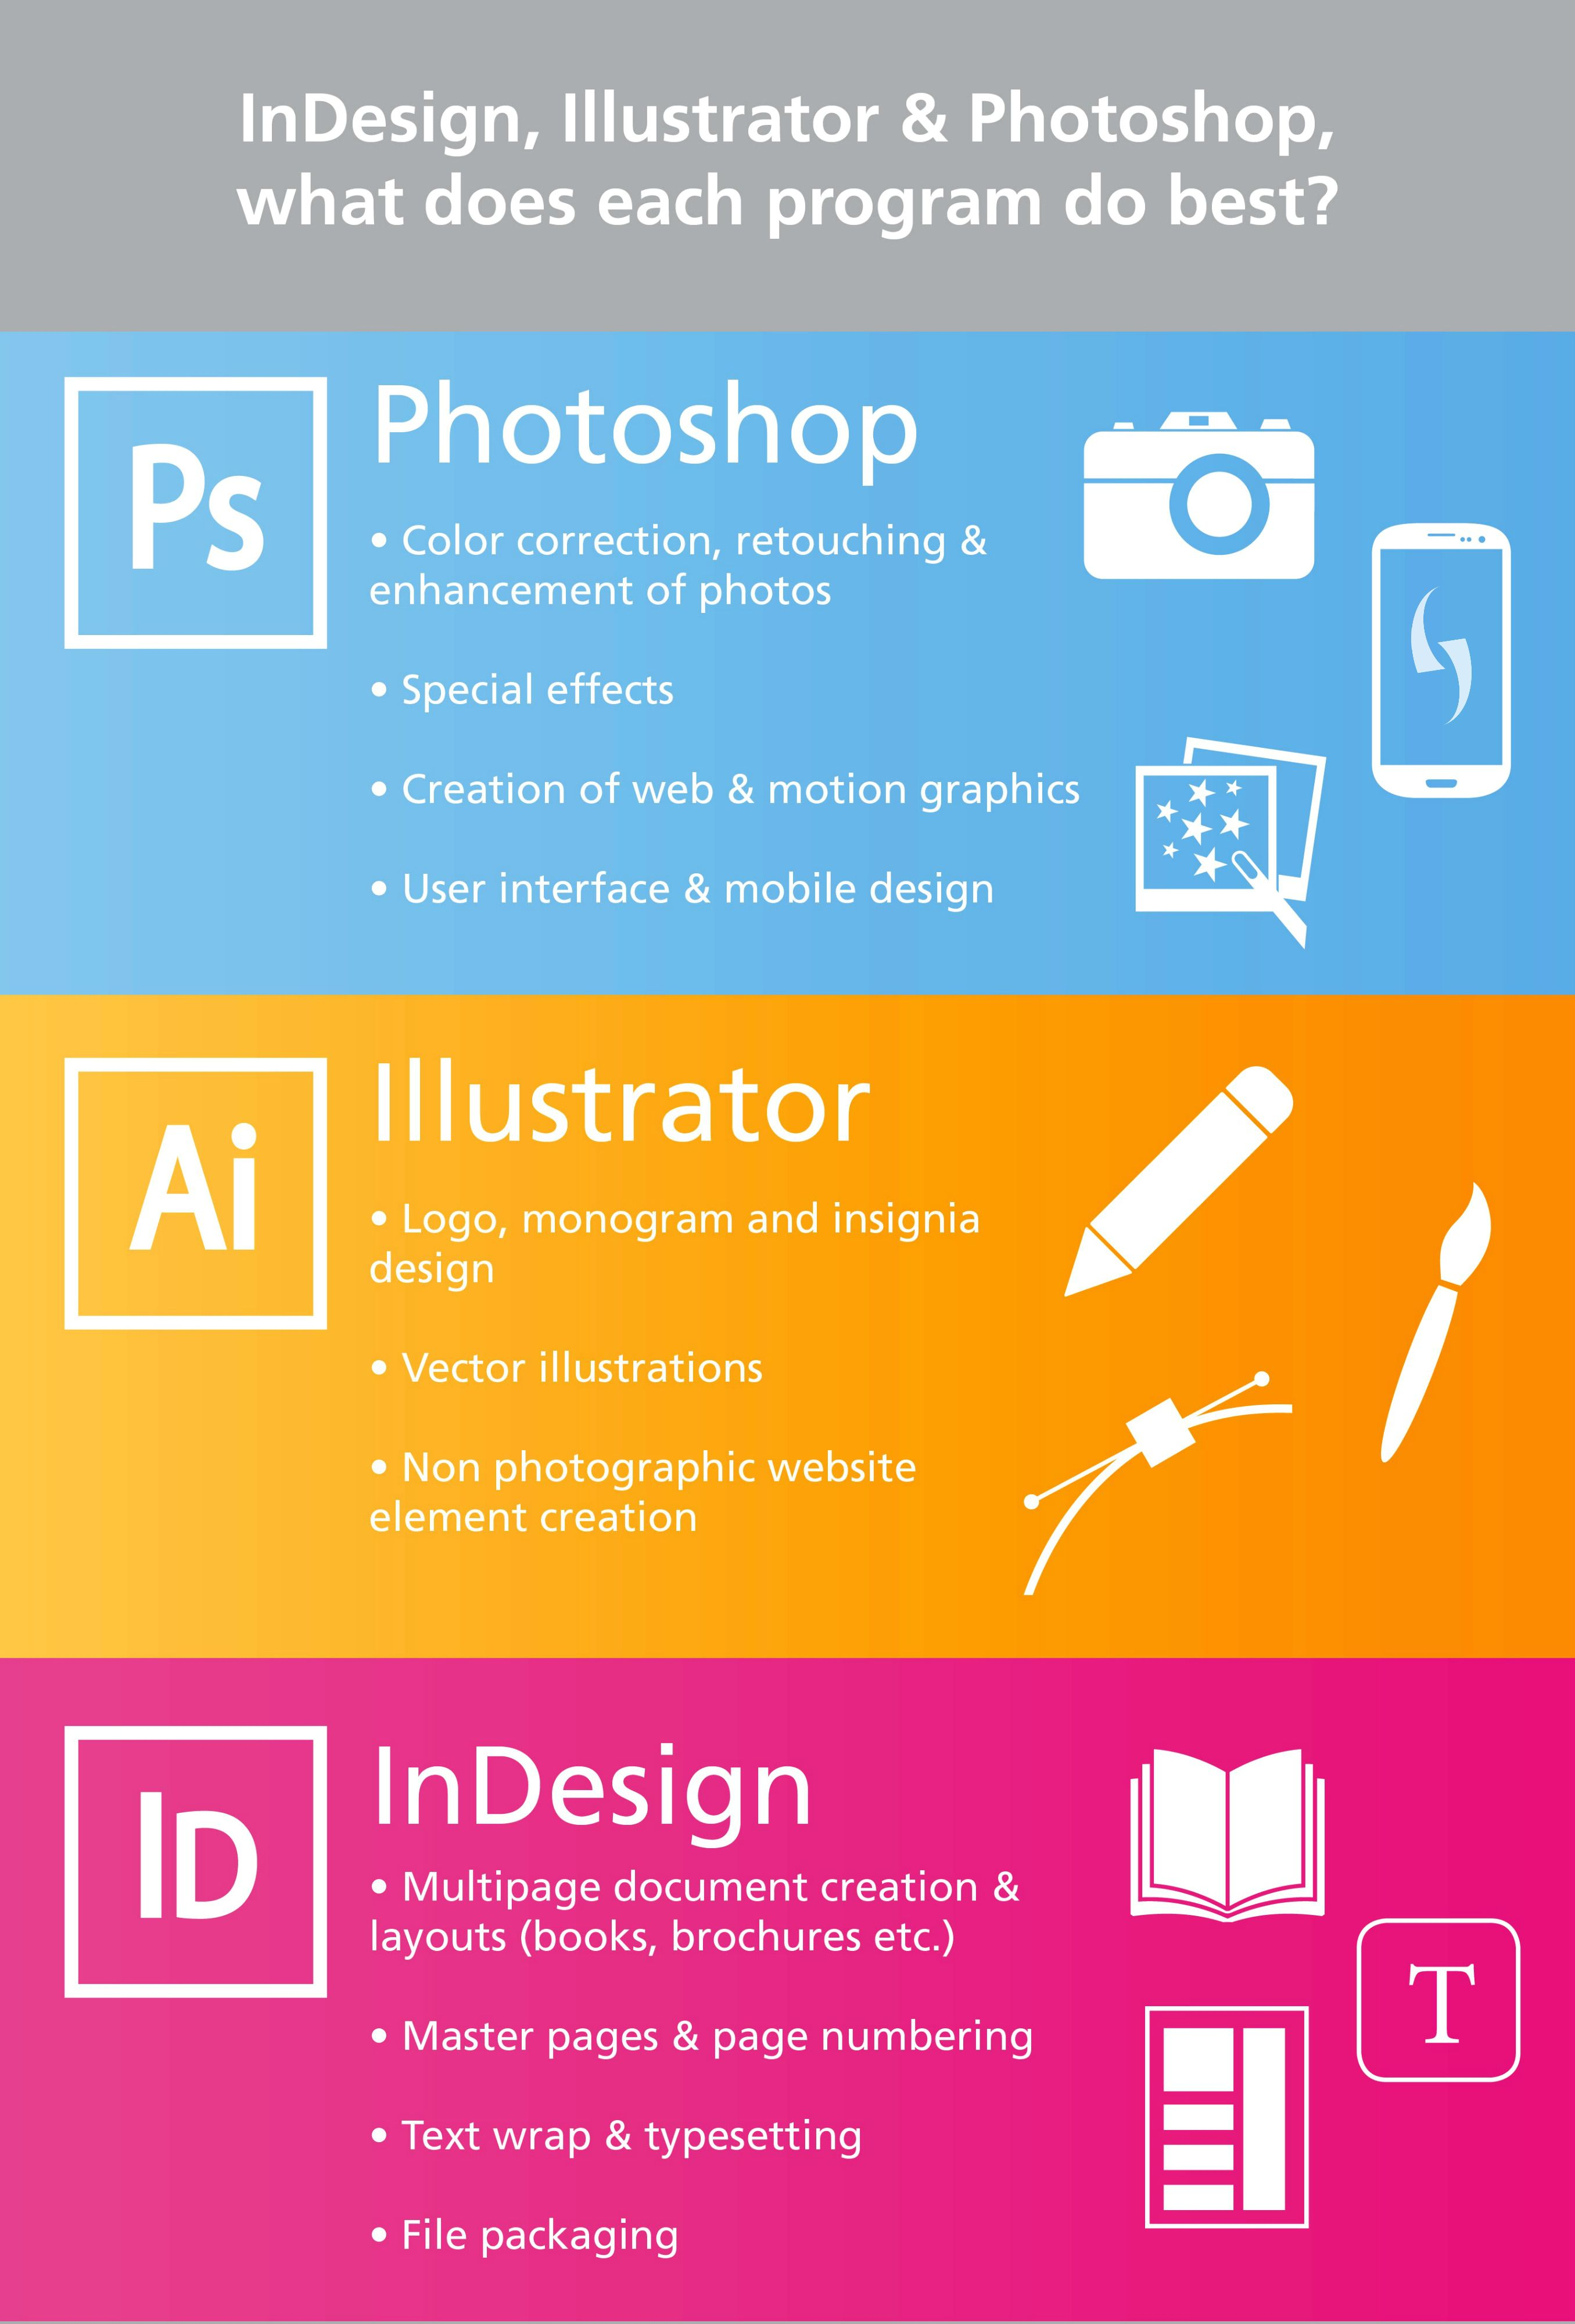 Adobe InDesign Illustrator Photoshop What Does Each